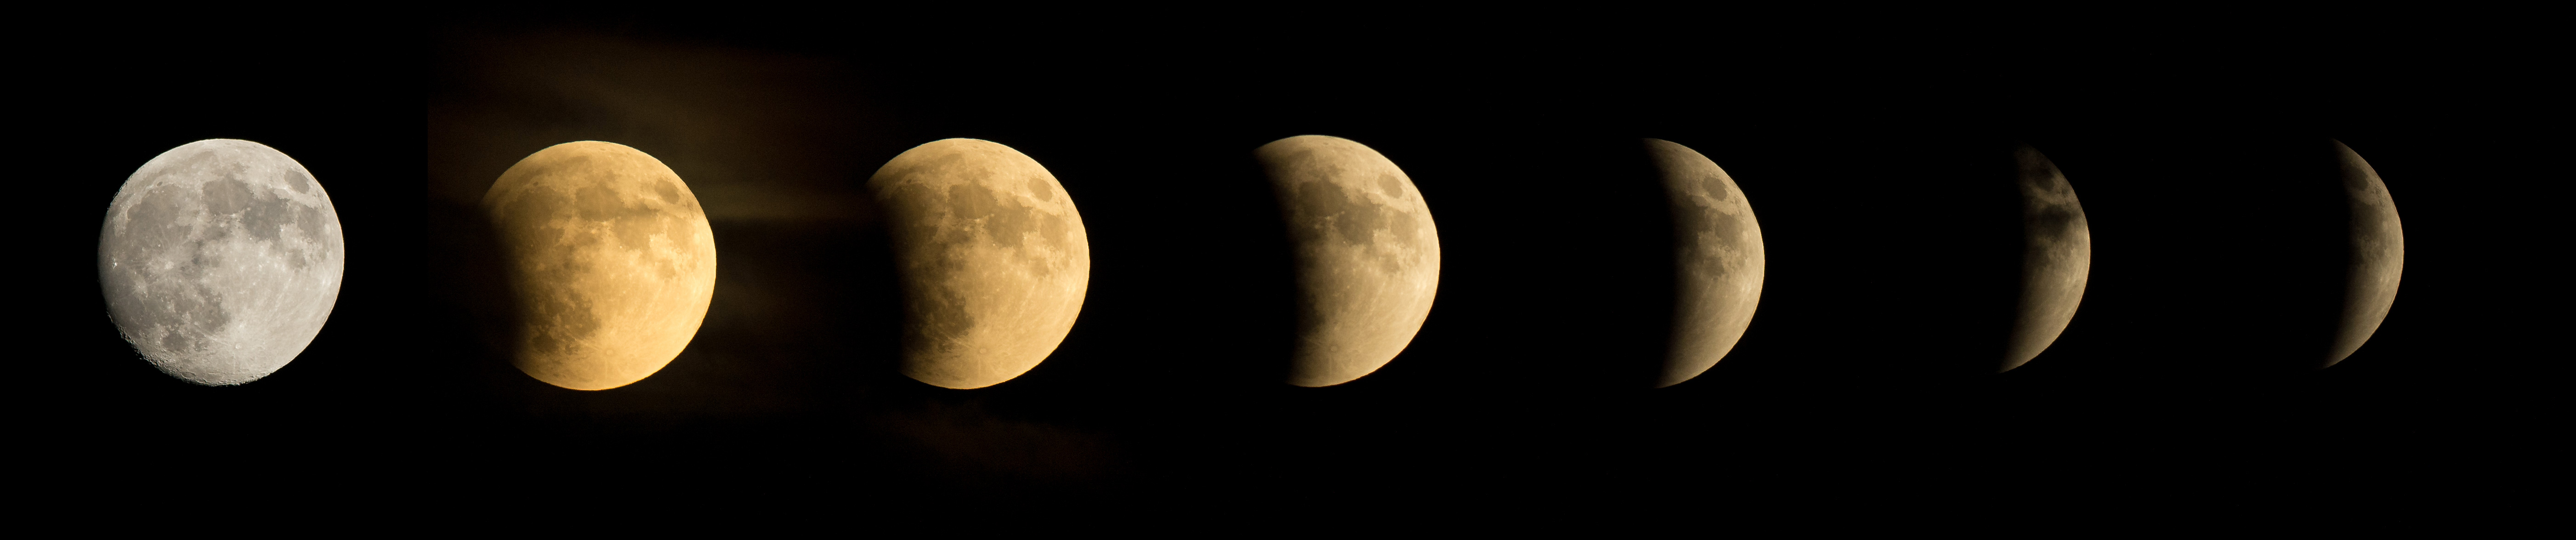 Series of images showing a lunar eclipse